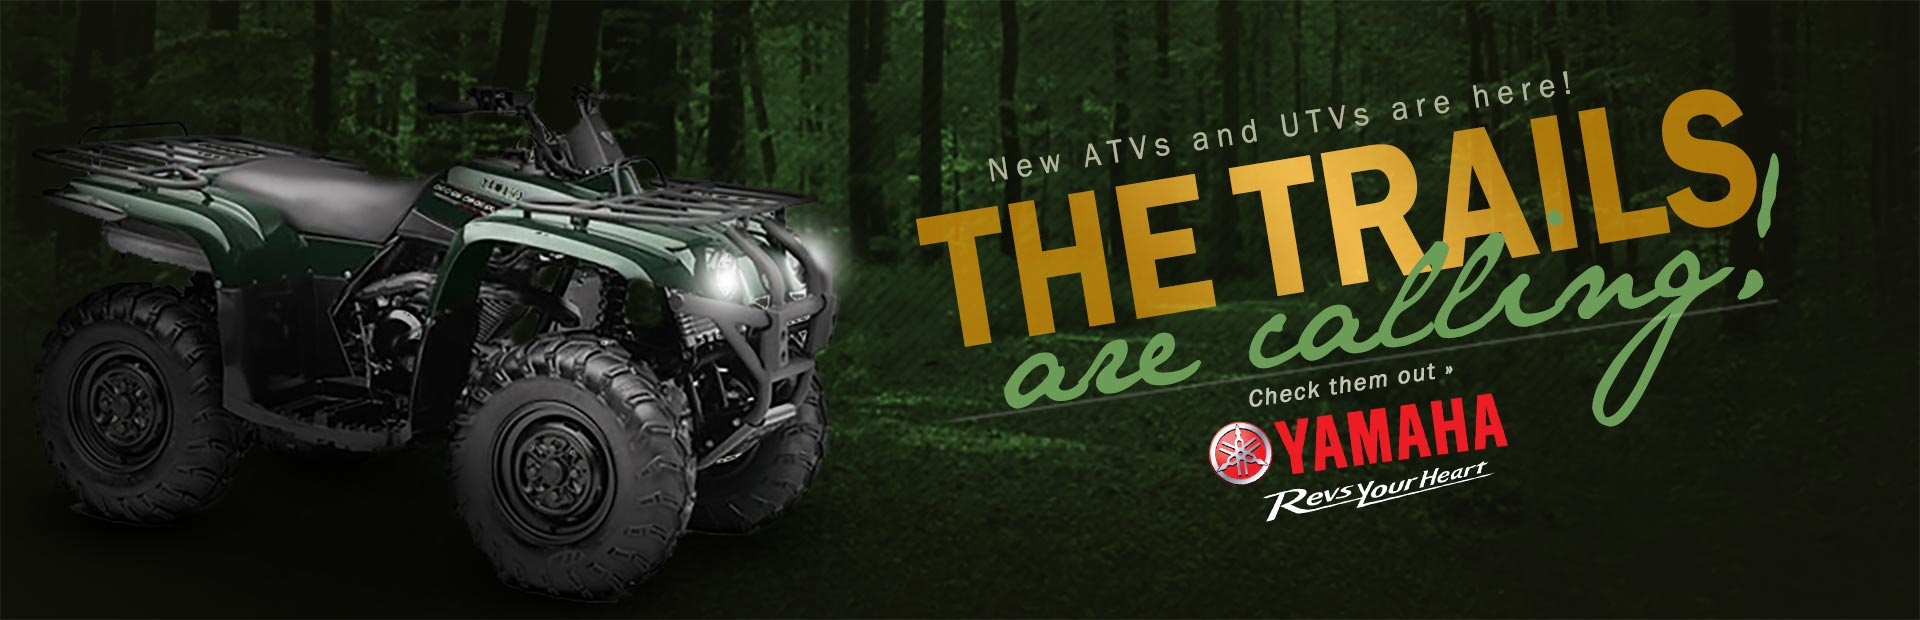 Click here to check out new ATVs and UTVs from Yamaha!